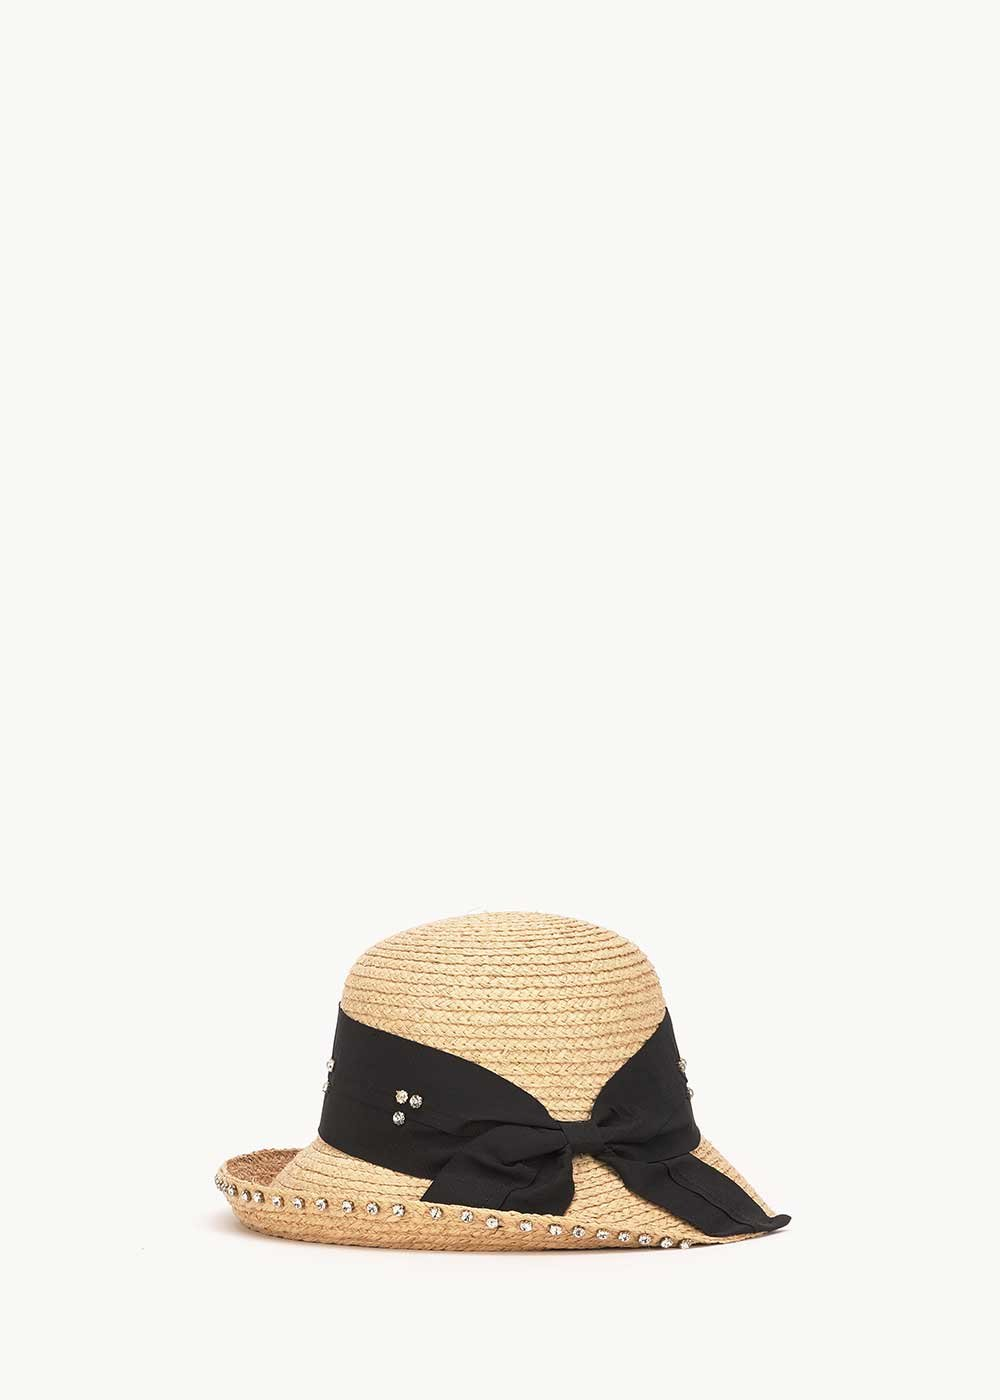 Cahil hat with black band and rhinestones - Light Beige - Woman